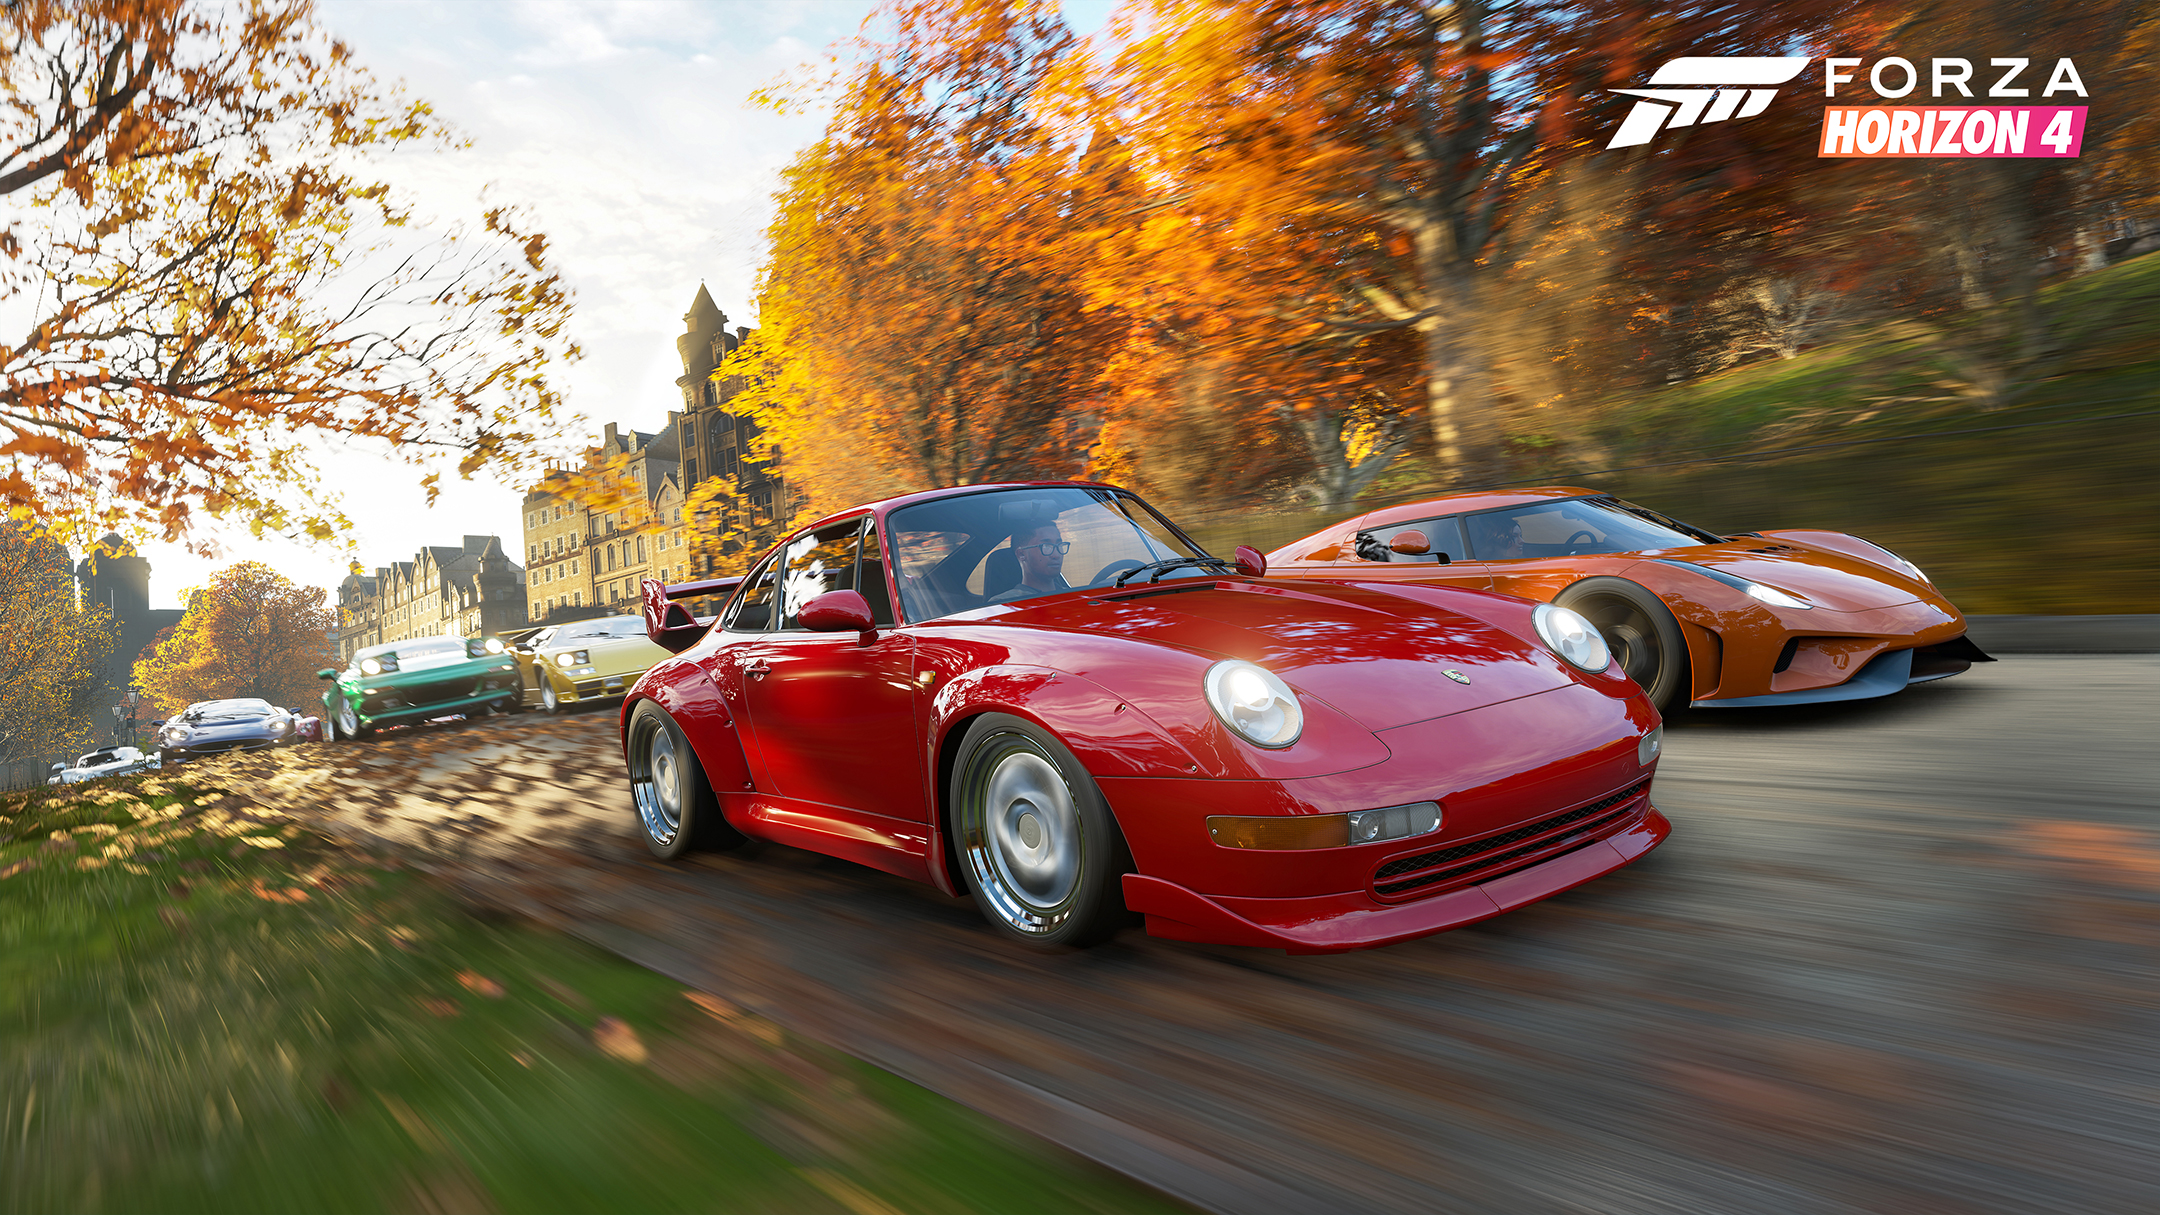 Forza Horizon 4 - 2018 - screen cars - Porsche classic